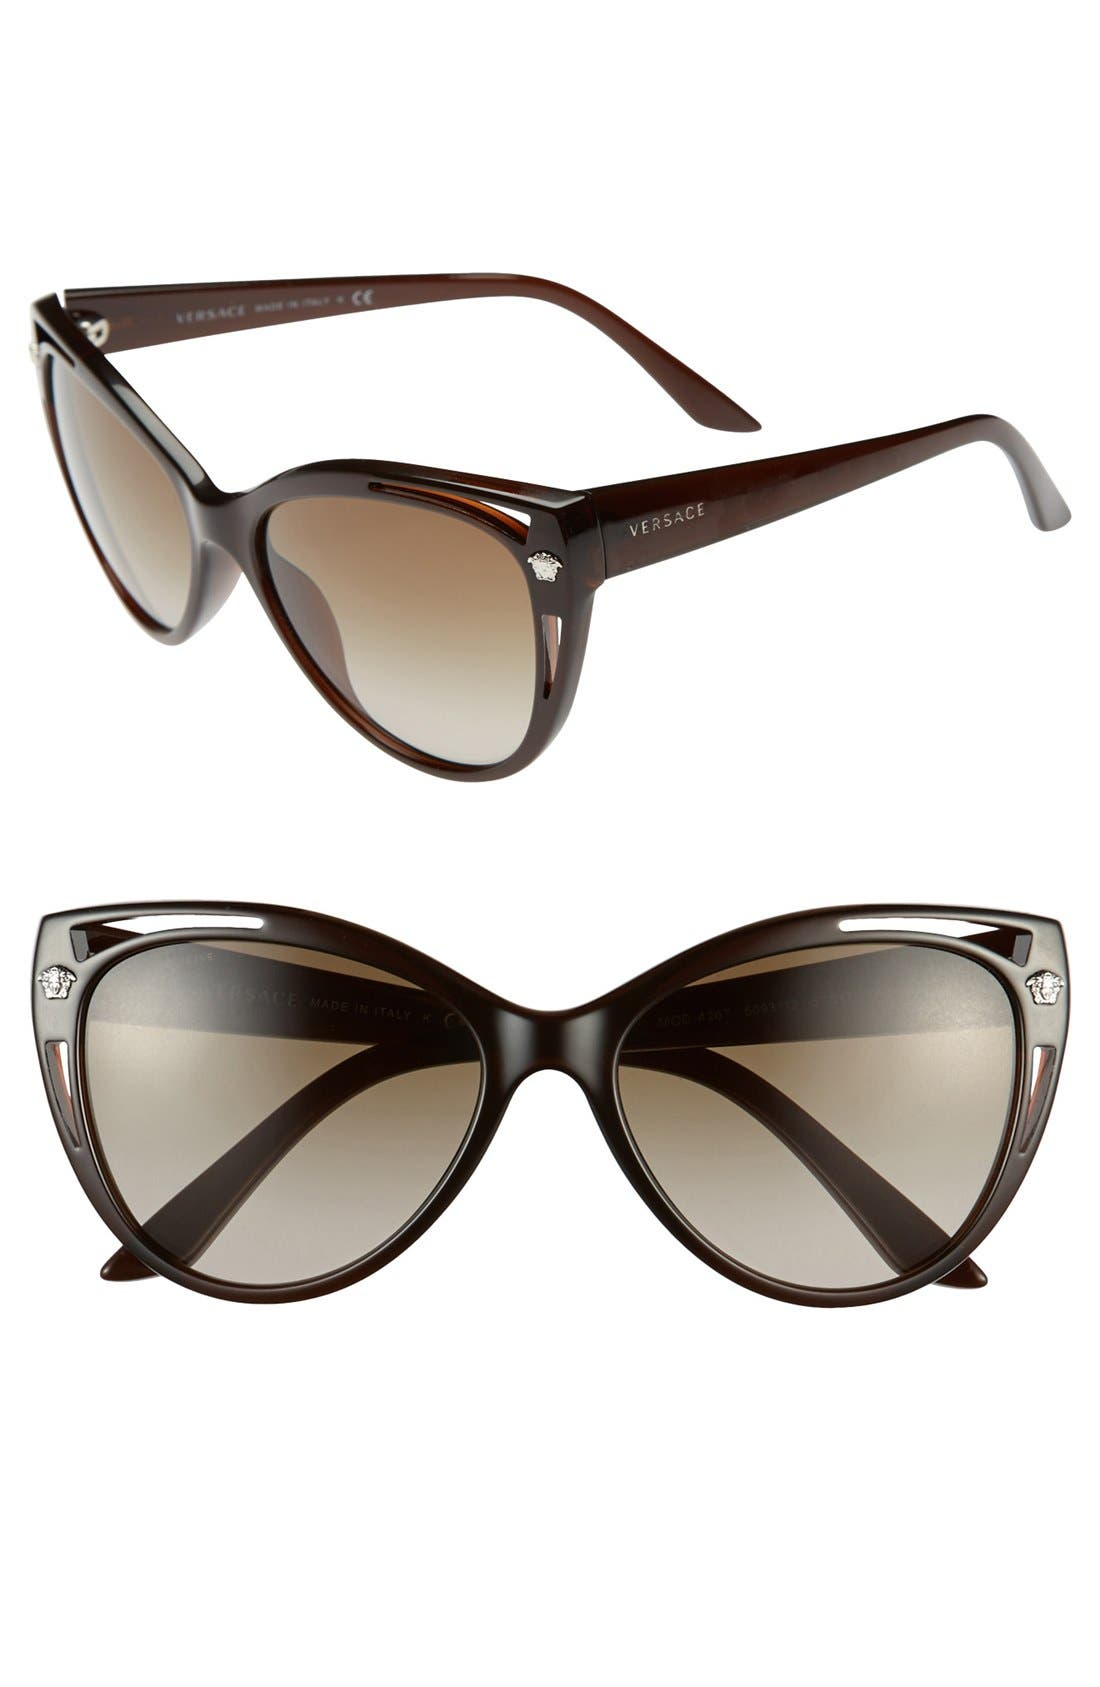 Alternate Image 1 Selected - Versace 'Pop Chic' 57mm Cat Eye Sunglasses